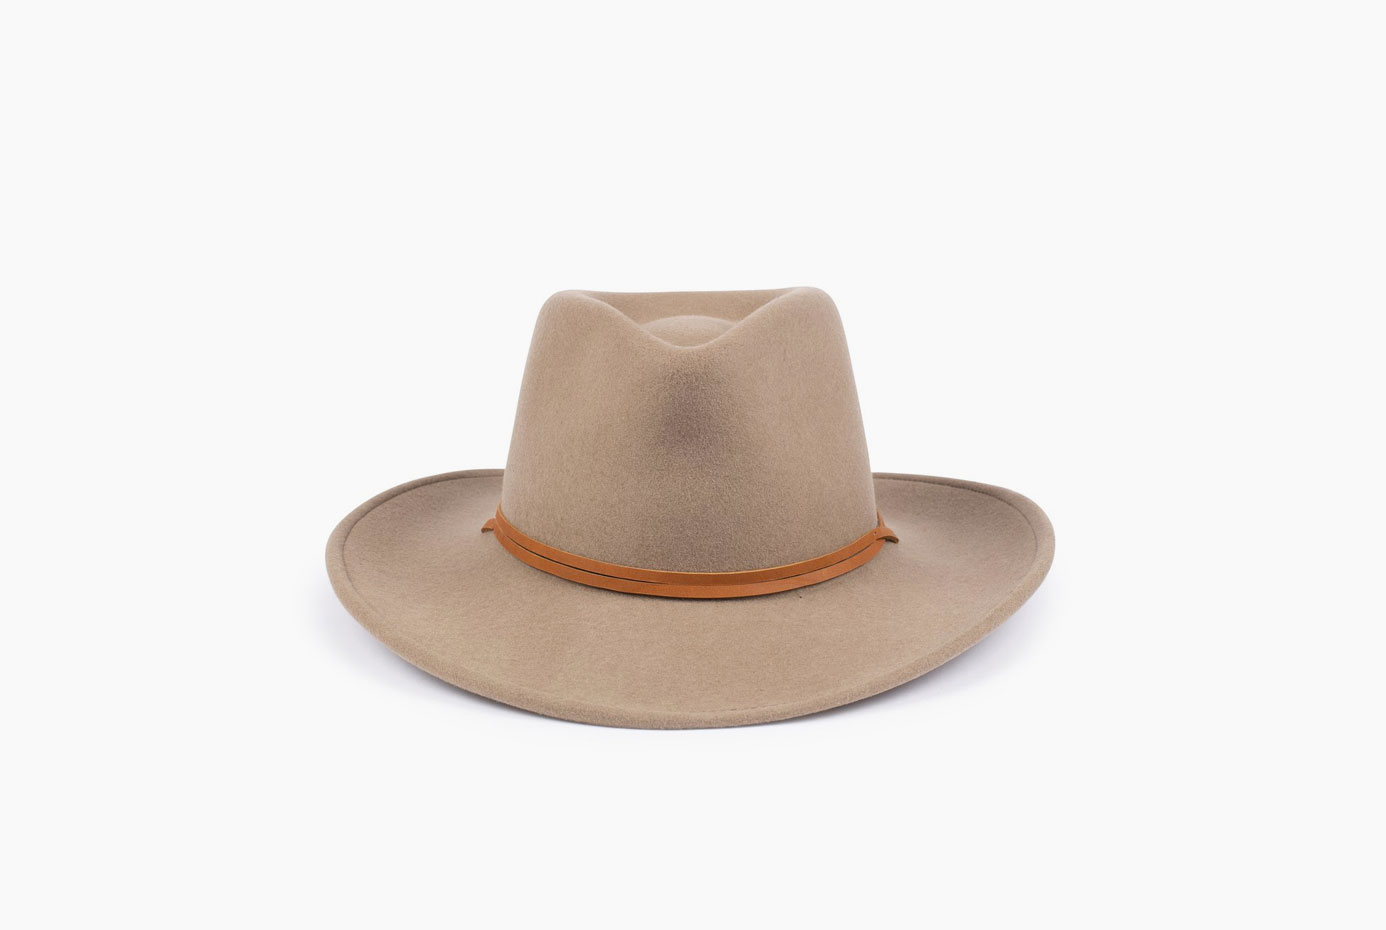 Seager x Stetson Lasso Outdoor Hat - Every Stetson tells a story. Is it seasoned with dirt and grime? Carefully cared-for? The Lasso is the perfect continuance to your dad's legend, or maybe even a new chapter. Let's see where he takes it.